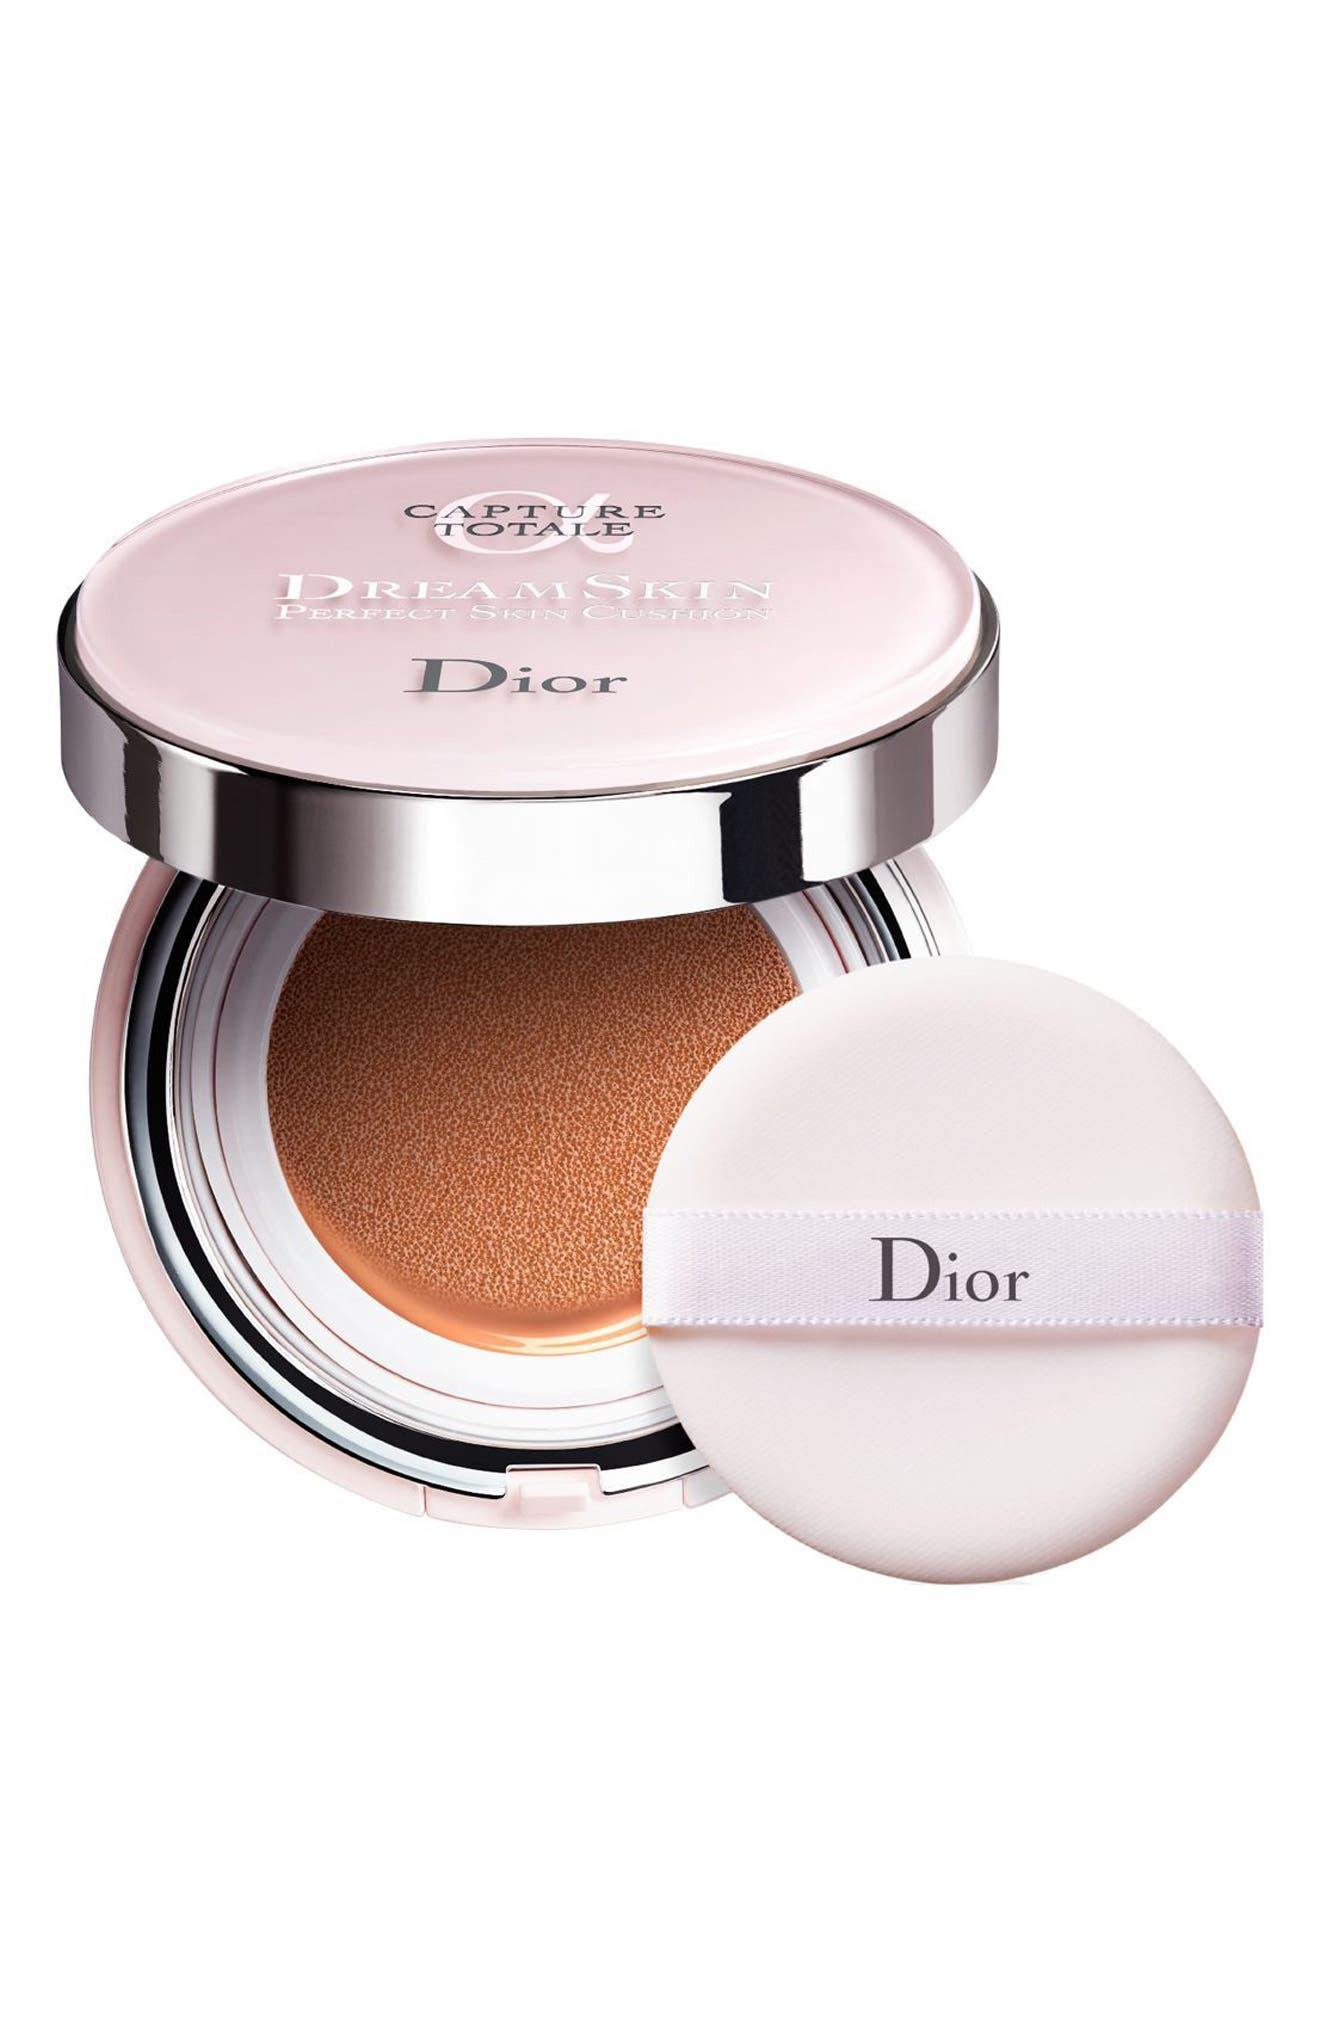 Alternate Image 1 Selected - Dior Capture Totale Dreamskin Perfect Skin Cushion Broad Spectrum SPF 50